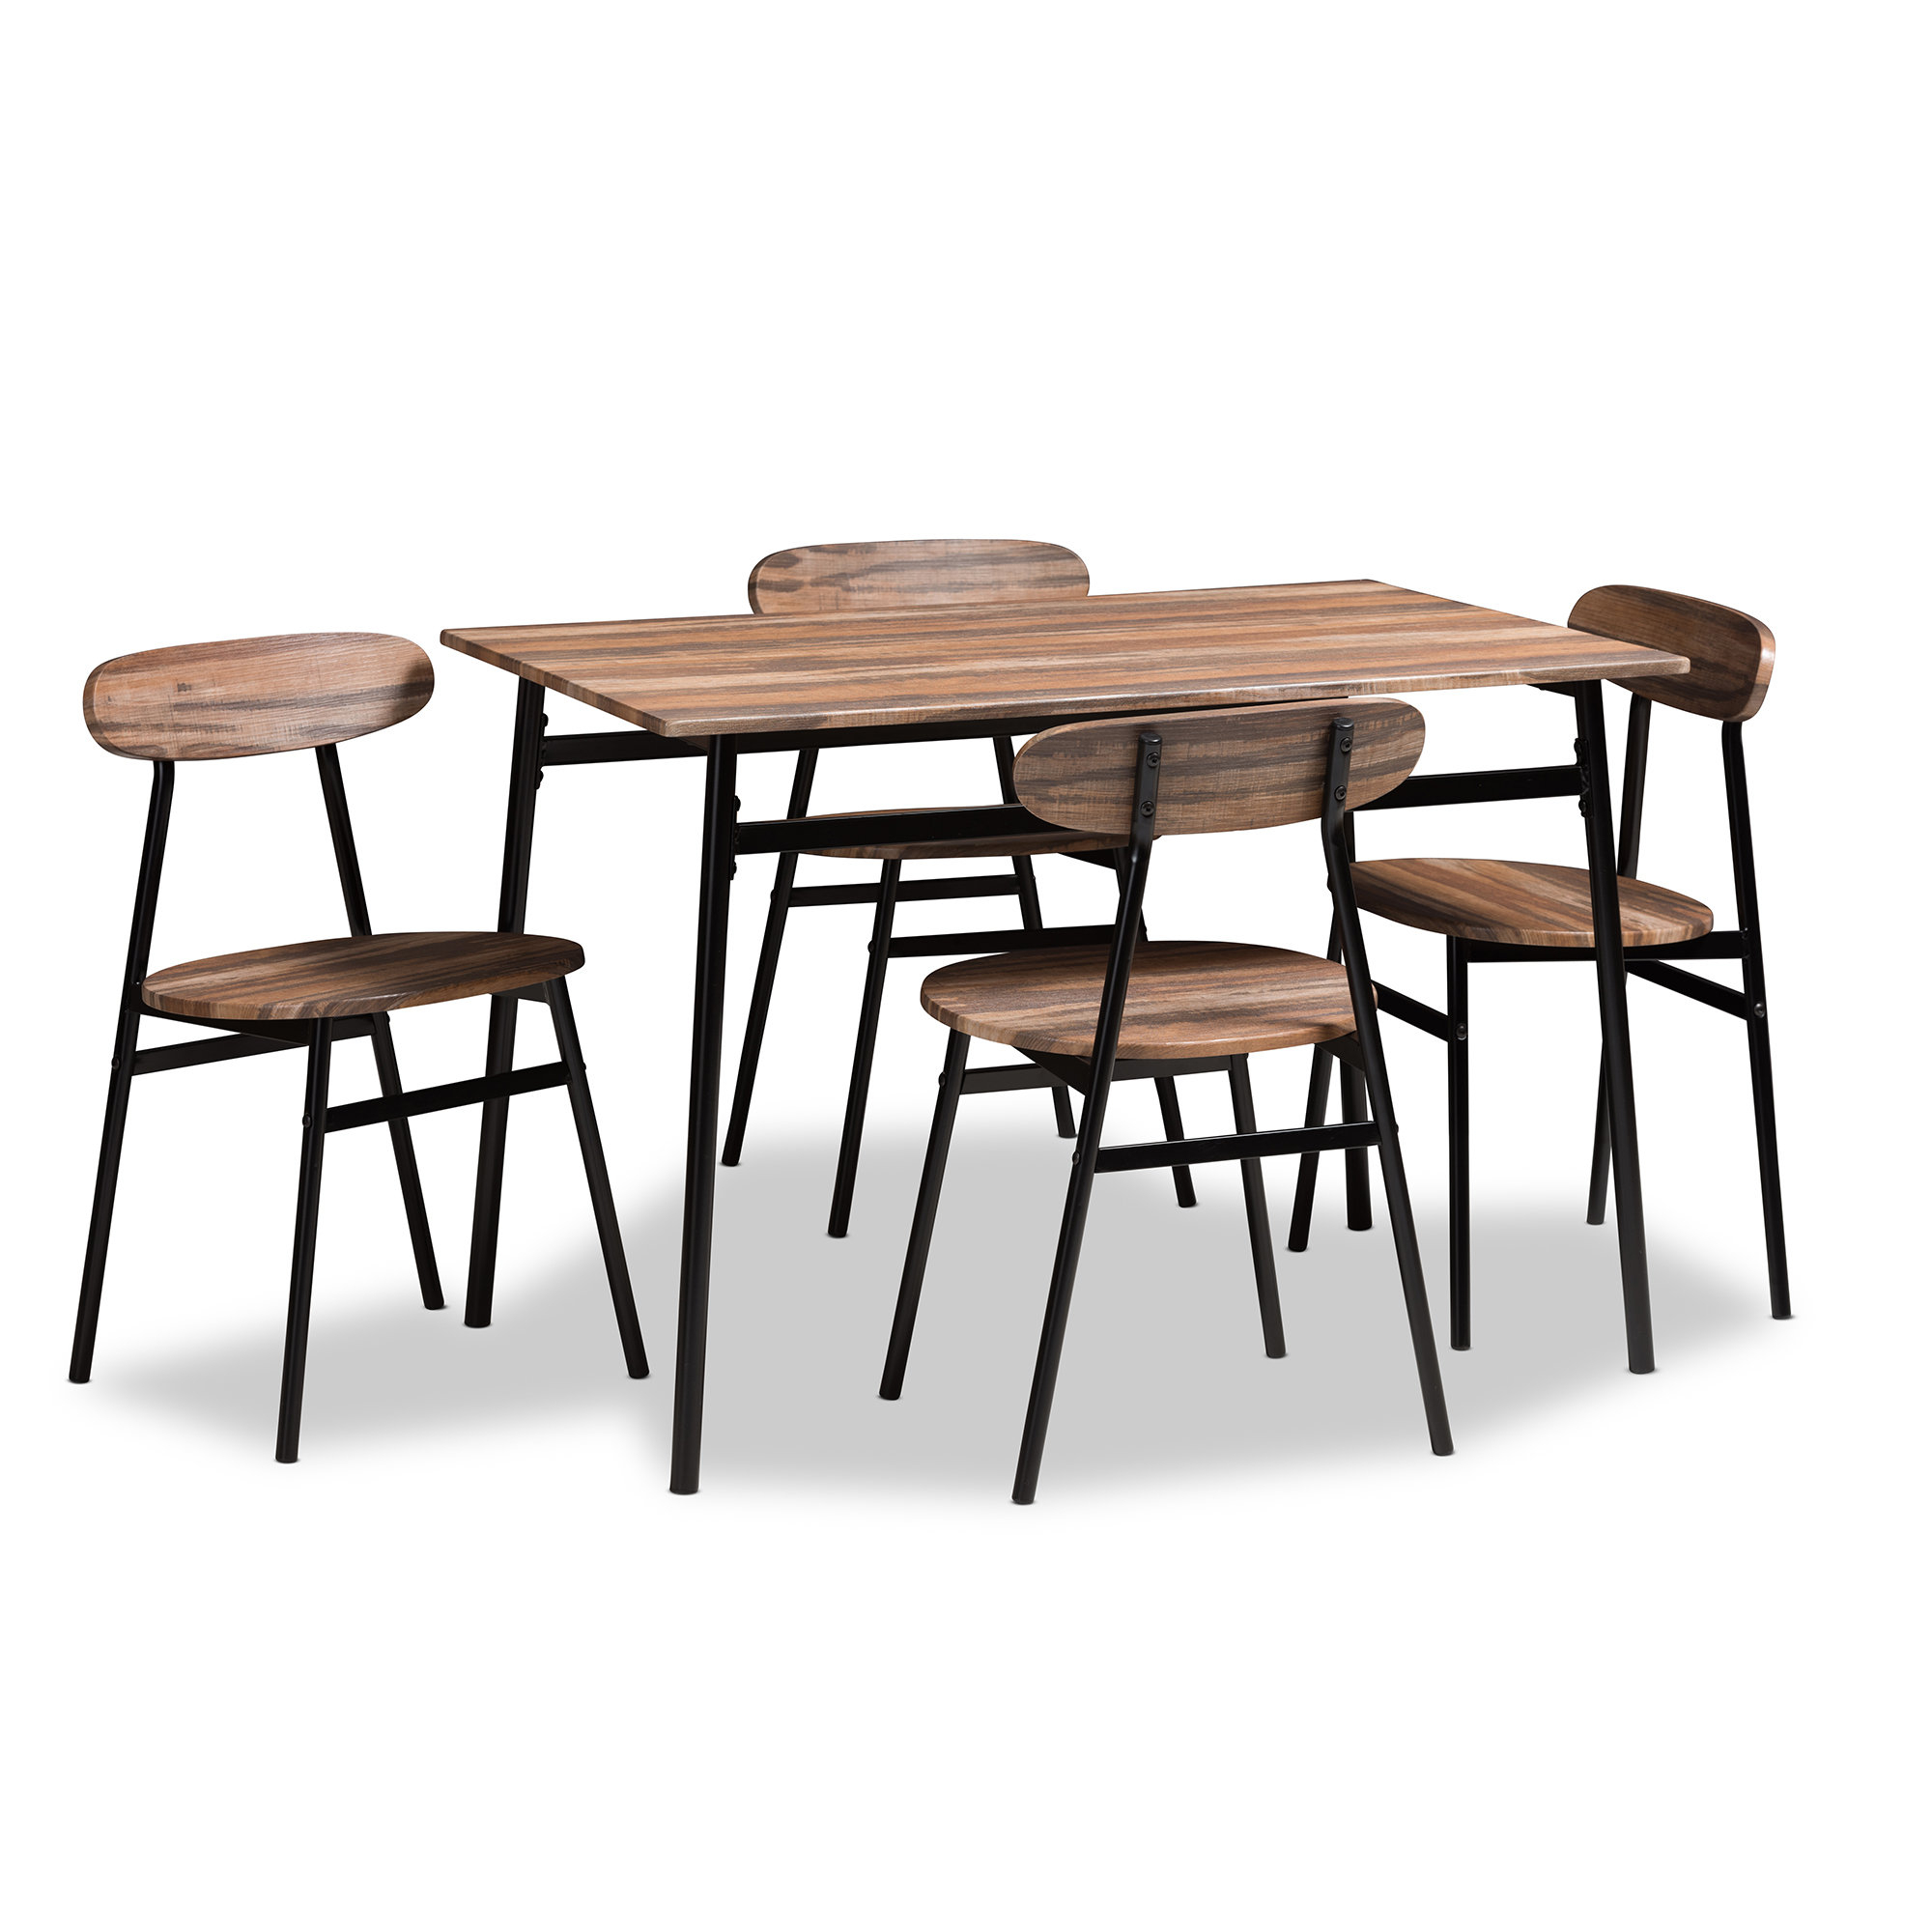 Telauges 5 Piece Dining Set Intended For Well Known Casiano 5 Piece Dining Sets (Gallery 3 of 20)